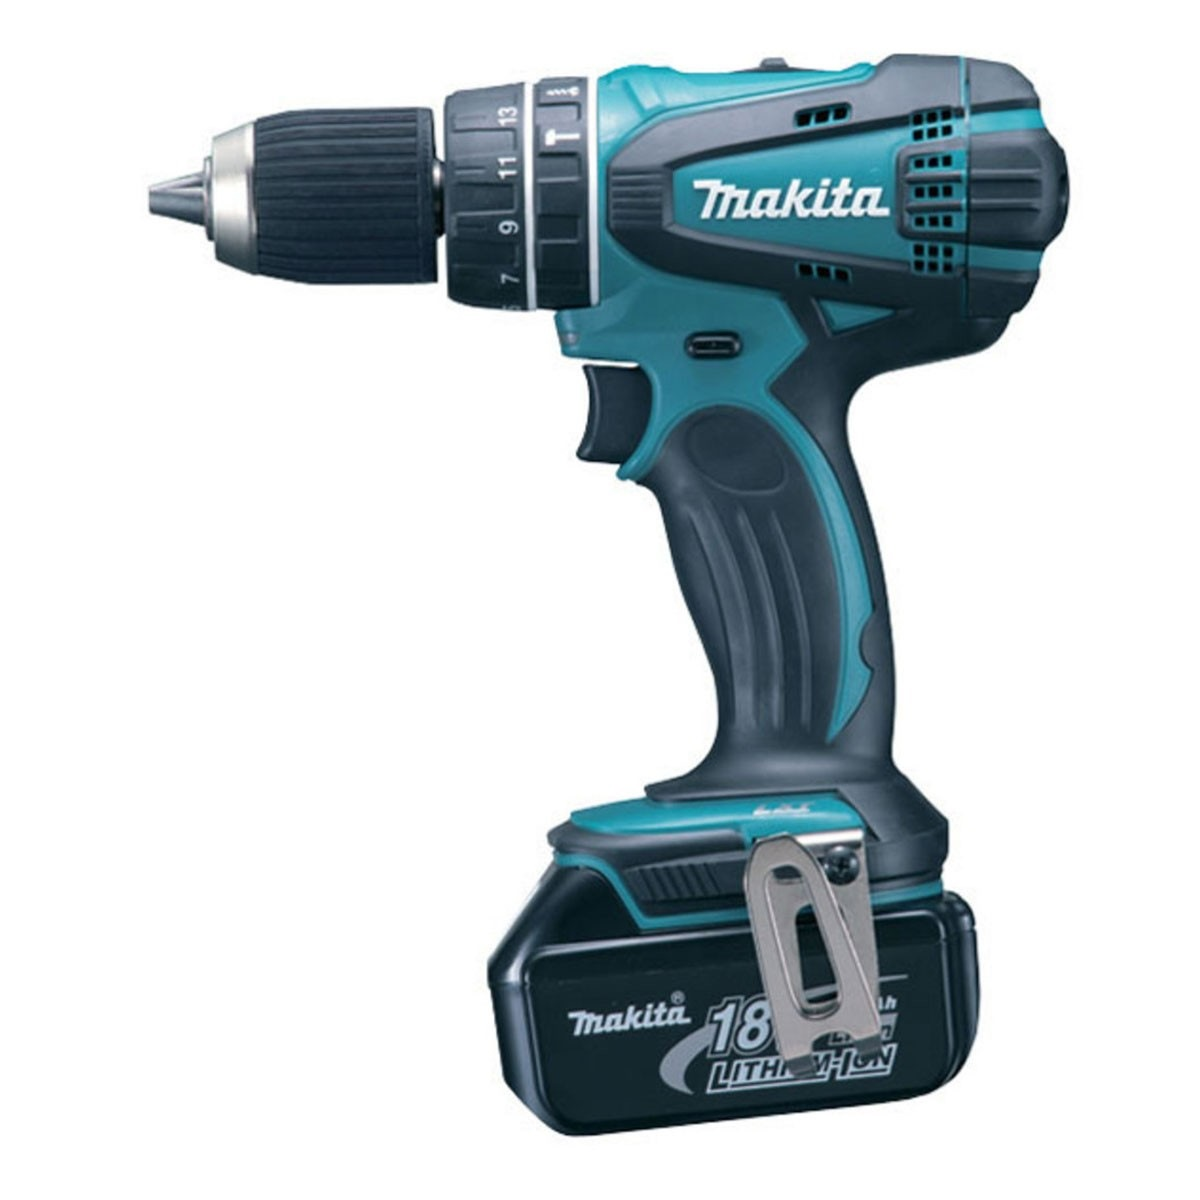 makita 18v 4 0ah li ion 13mm hammer drill dhp456rme cordless drills impact drivers. Black Bedroom Furniture Sets. Home Design Ideas